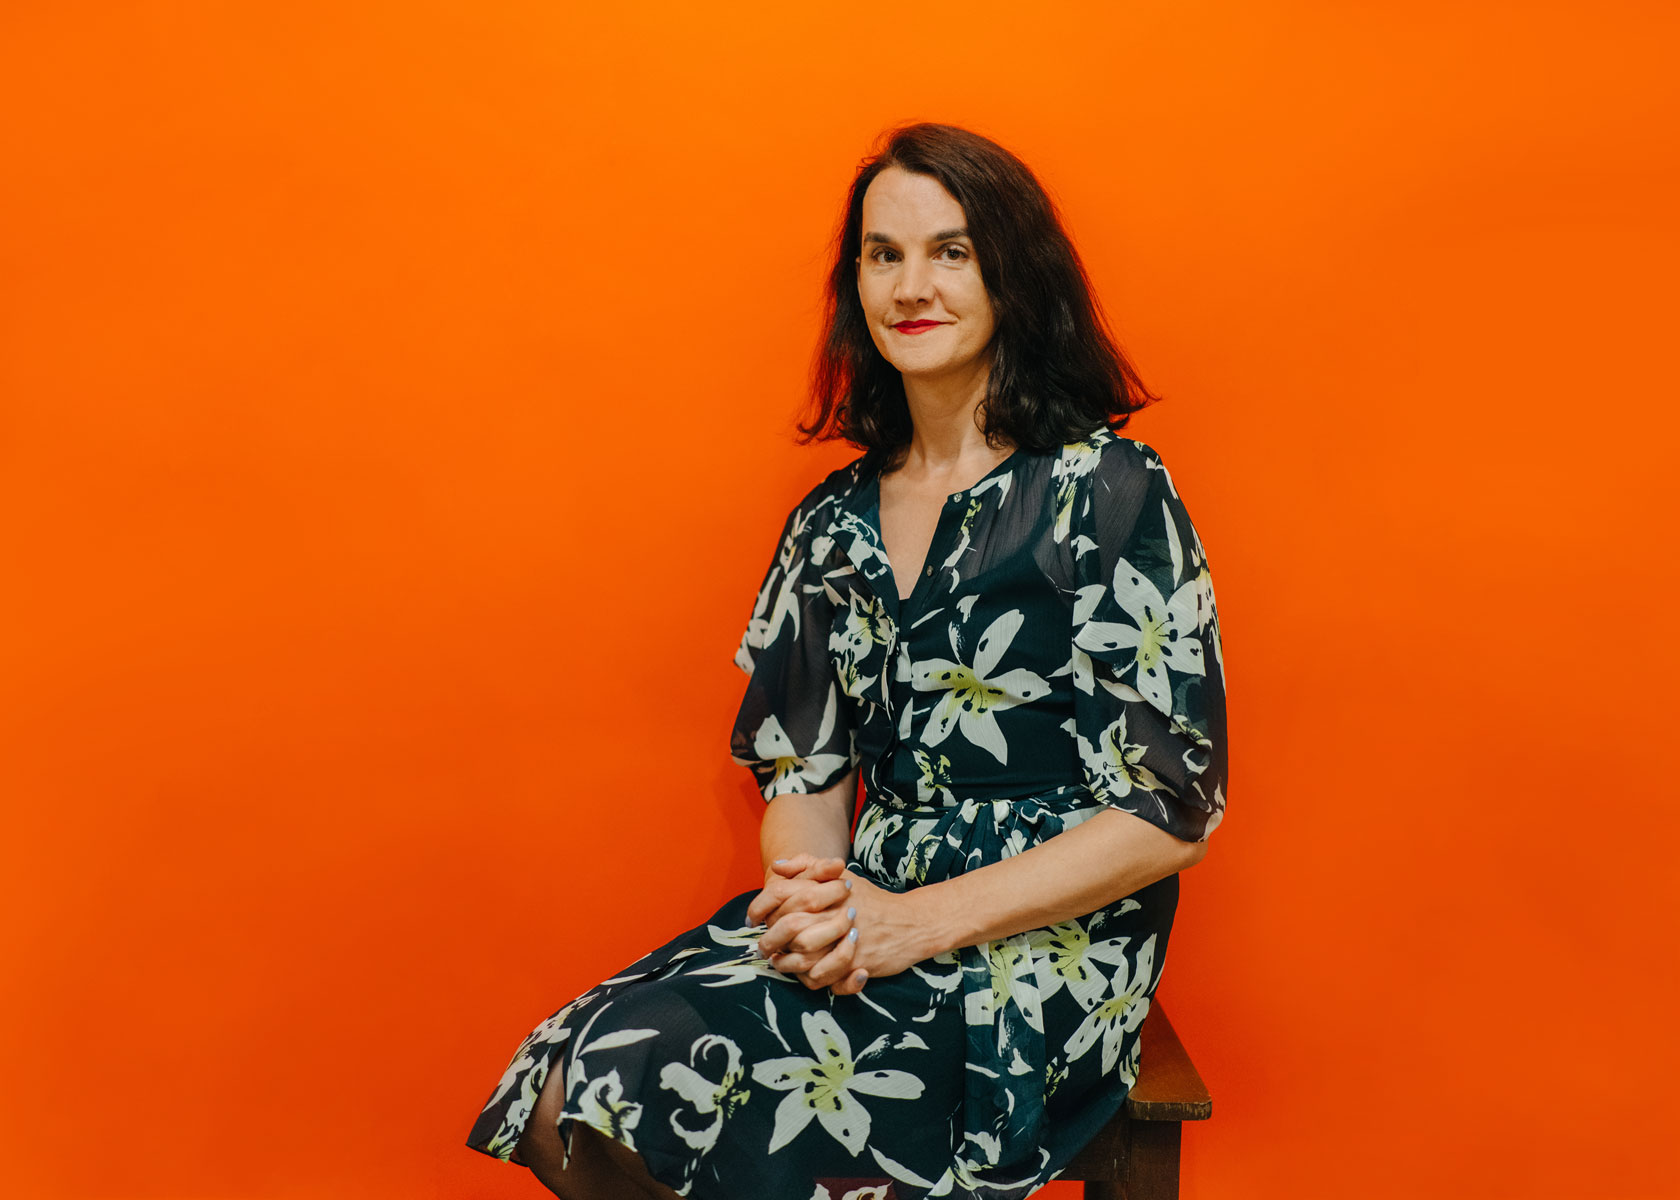 Uglow sporting a tropical dress sitting in front of an orange backdrop.